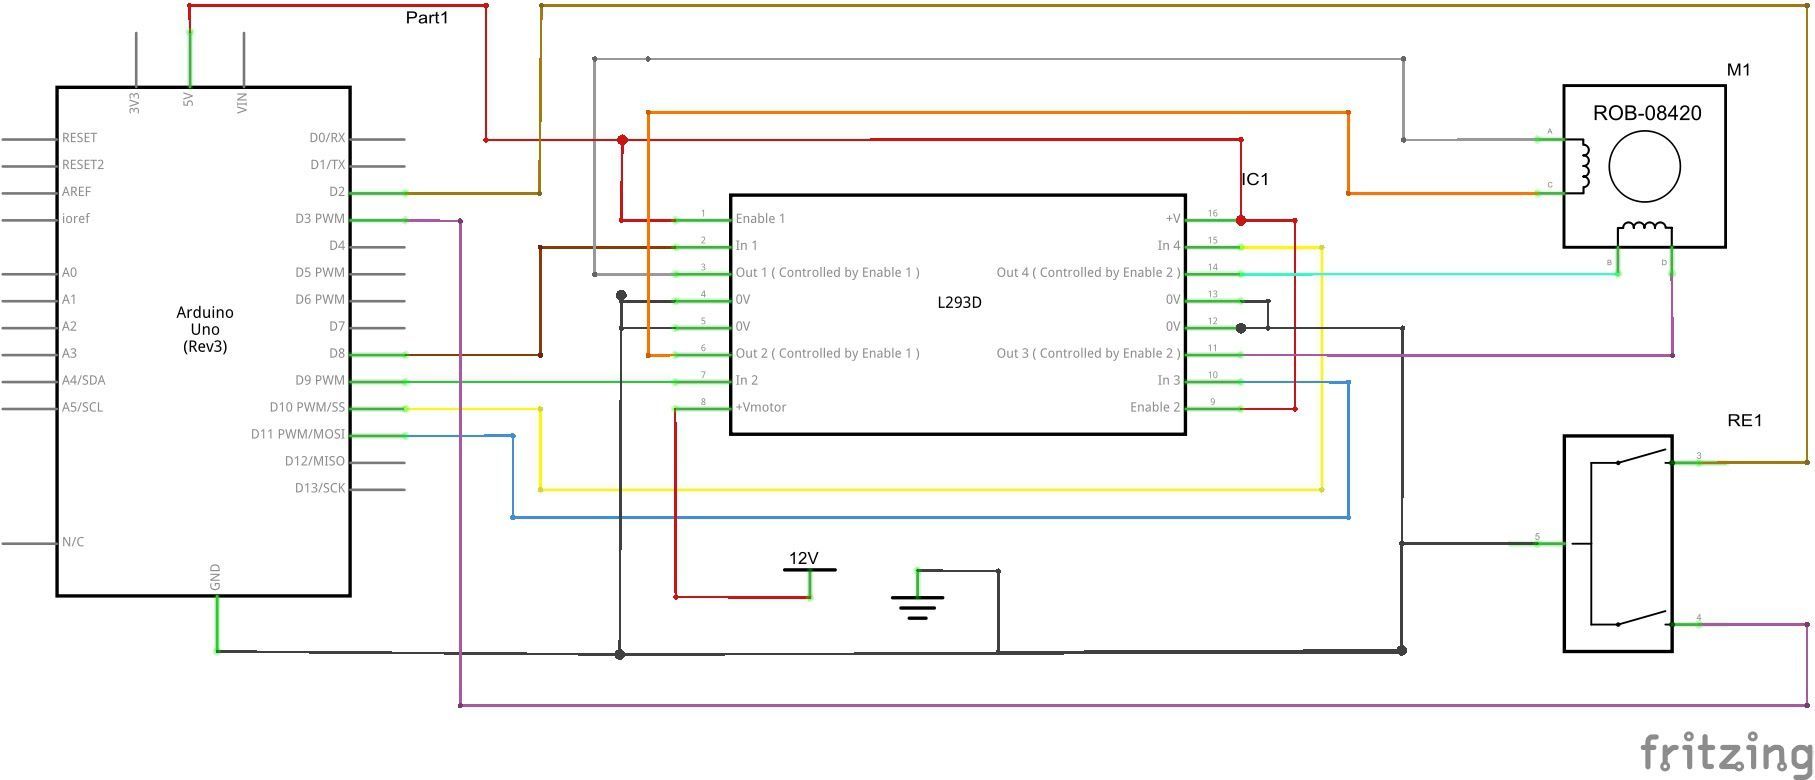 How To Use A Rotary Encoder With Arduino Board And H Bridge Chip Diagram Together L298 Circuit Pin On Control Bipolar Stepper Motor The Code Scheme